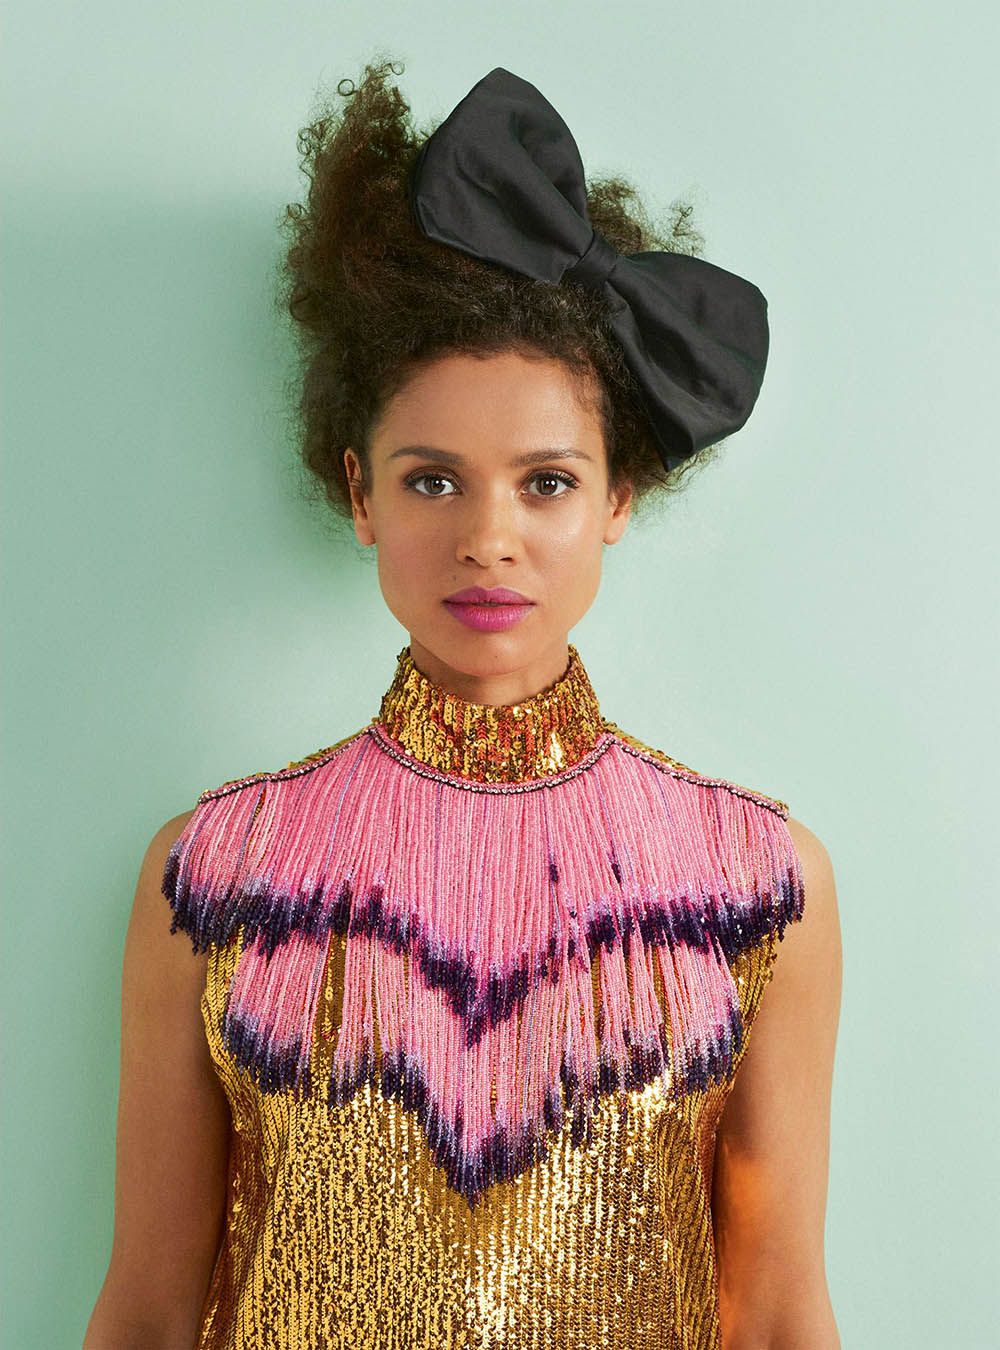 Gugu Mbatha-Raw covers Harper's Bazaar UK April 2020 by Richard Phibbs